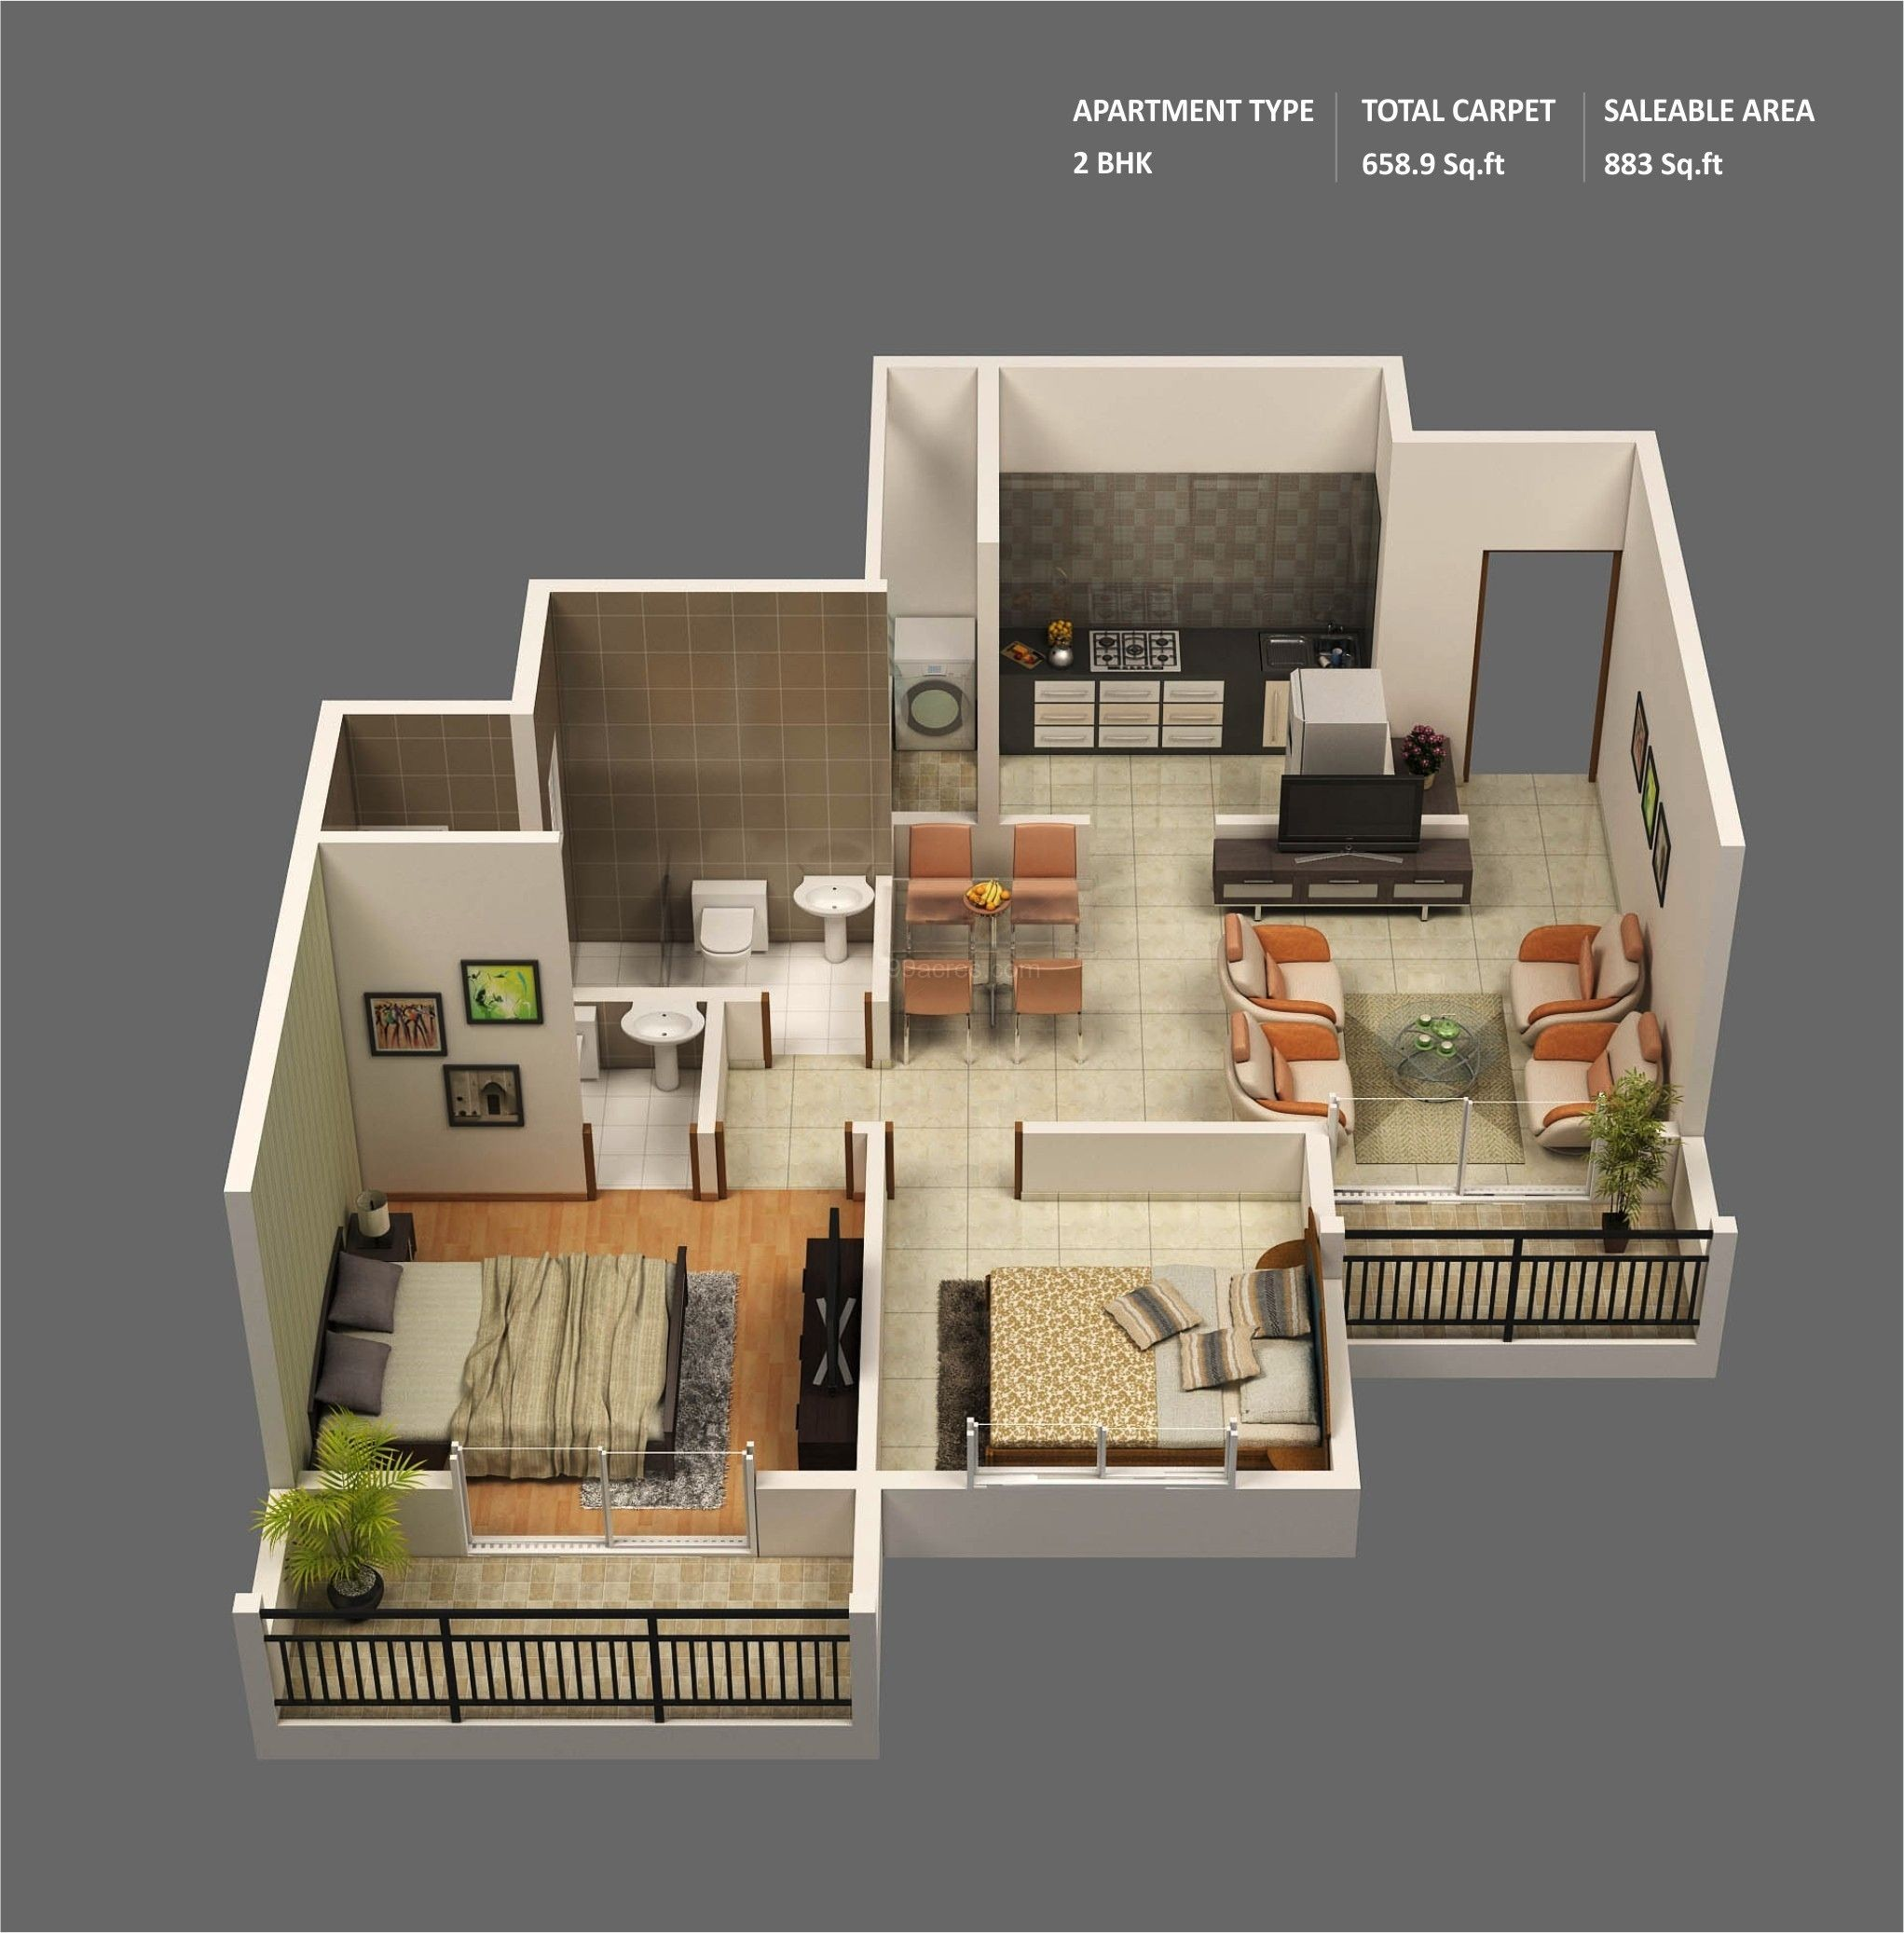 Plan D'appartement Plans D Appartements Modernes Alix Delclaux Architecte Interieur